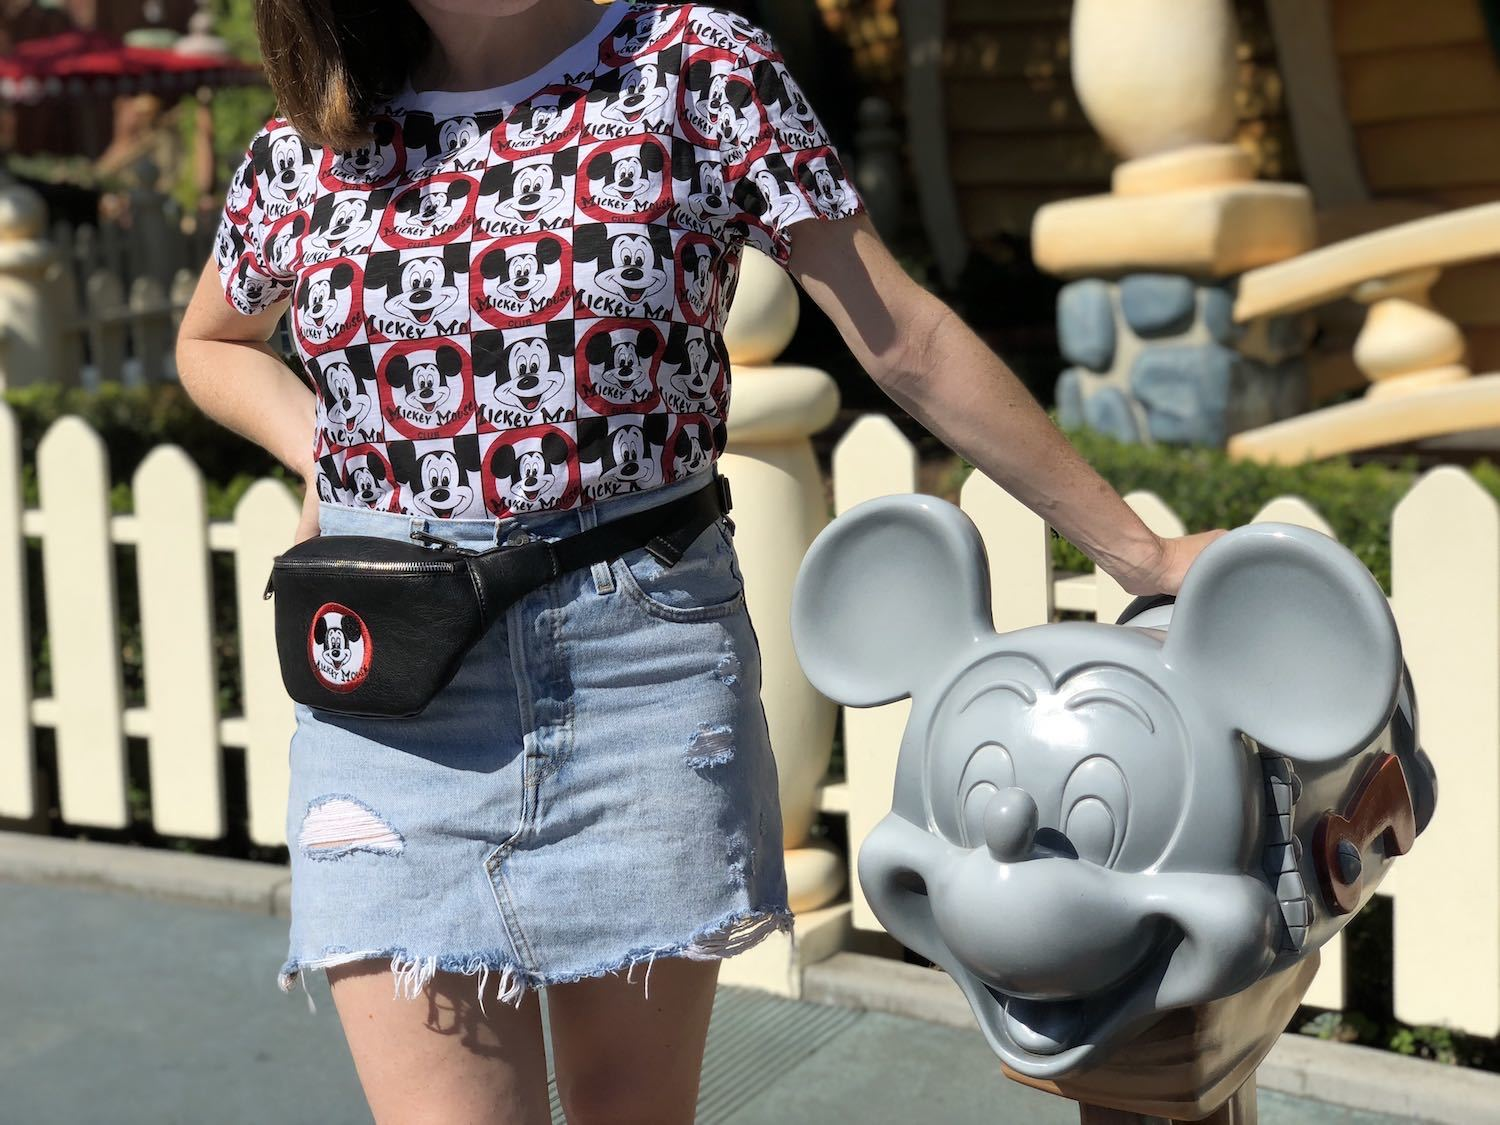 Tee shirt and waist bag from the Mickey Mouse Club collection